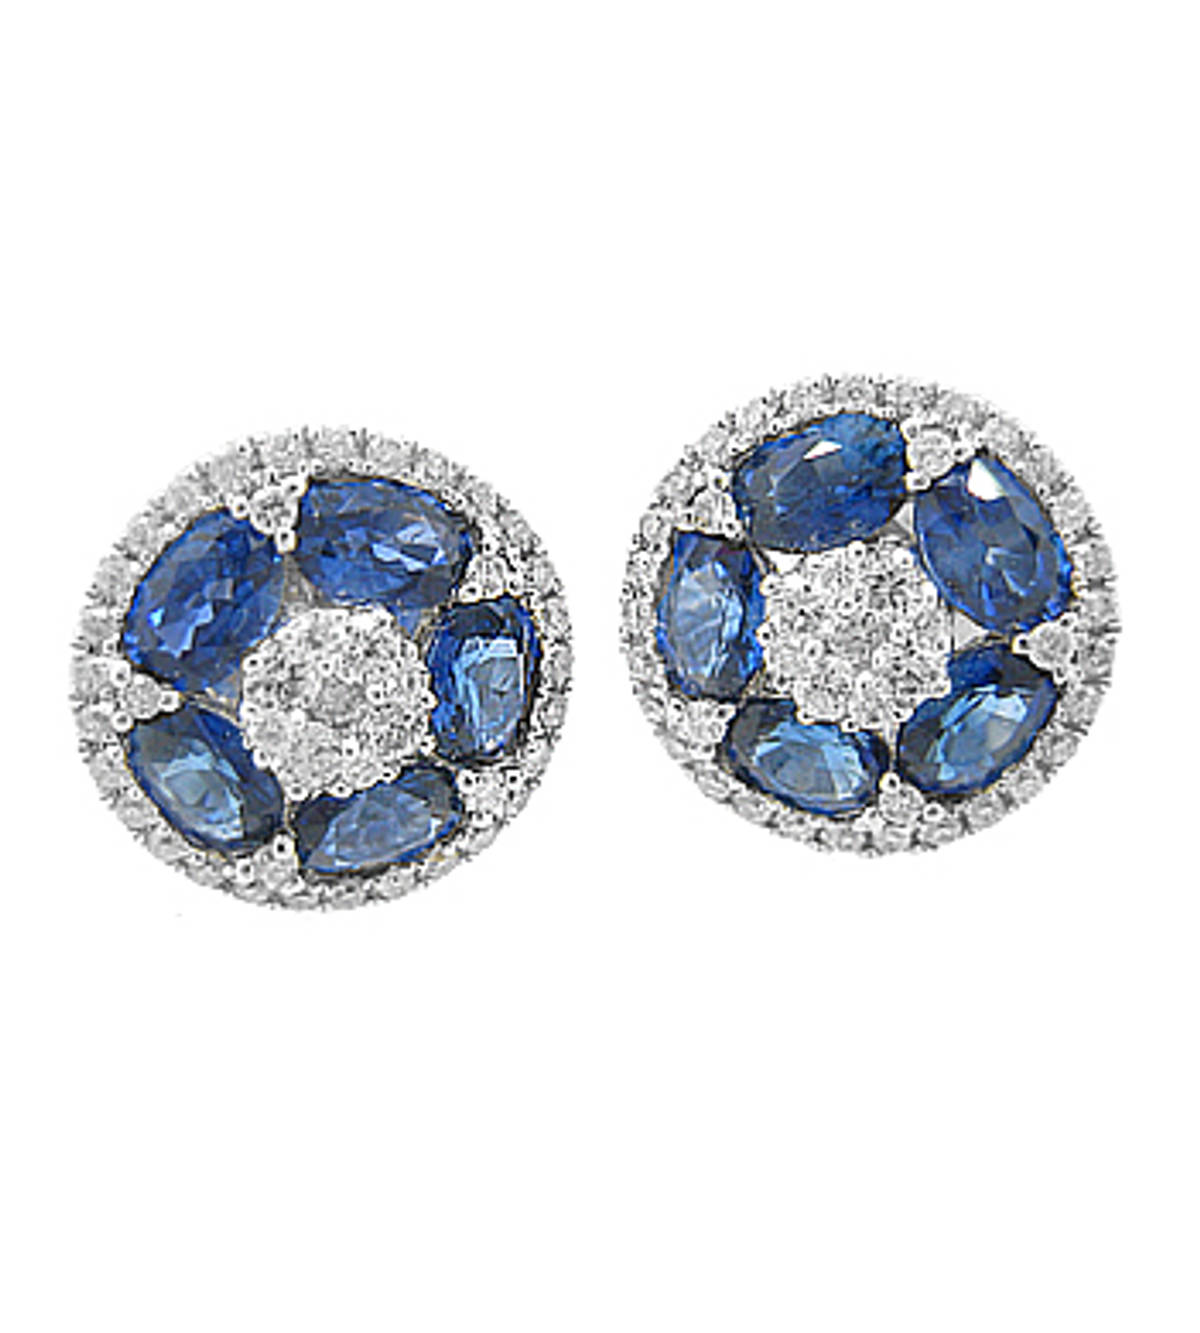 SAPPHIRE AND DIAMOND CLUSTER STUD EARRINGSPictured item: sapphire 1.29ct/diamonds 0.32ct set in 18k white gold